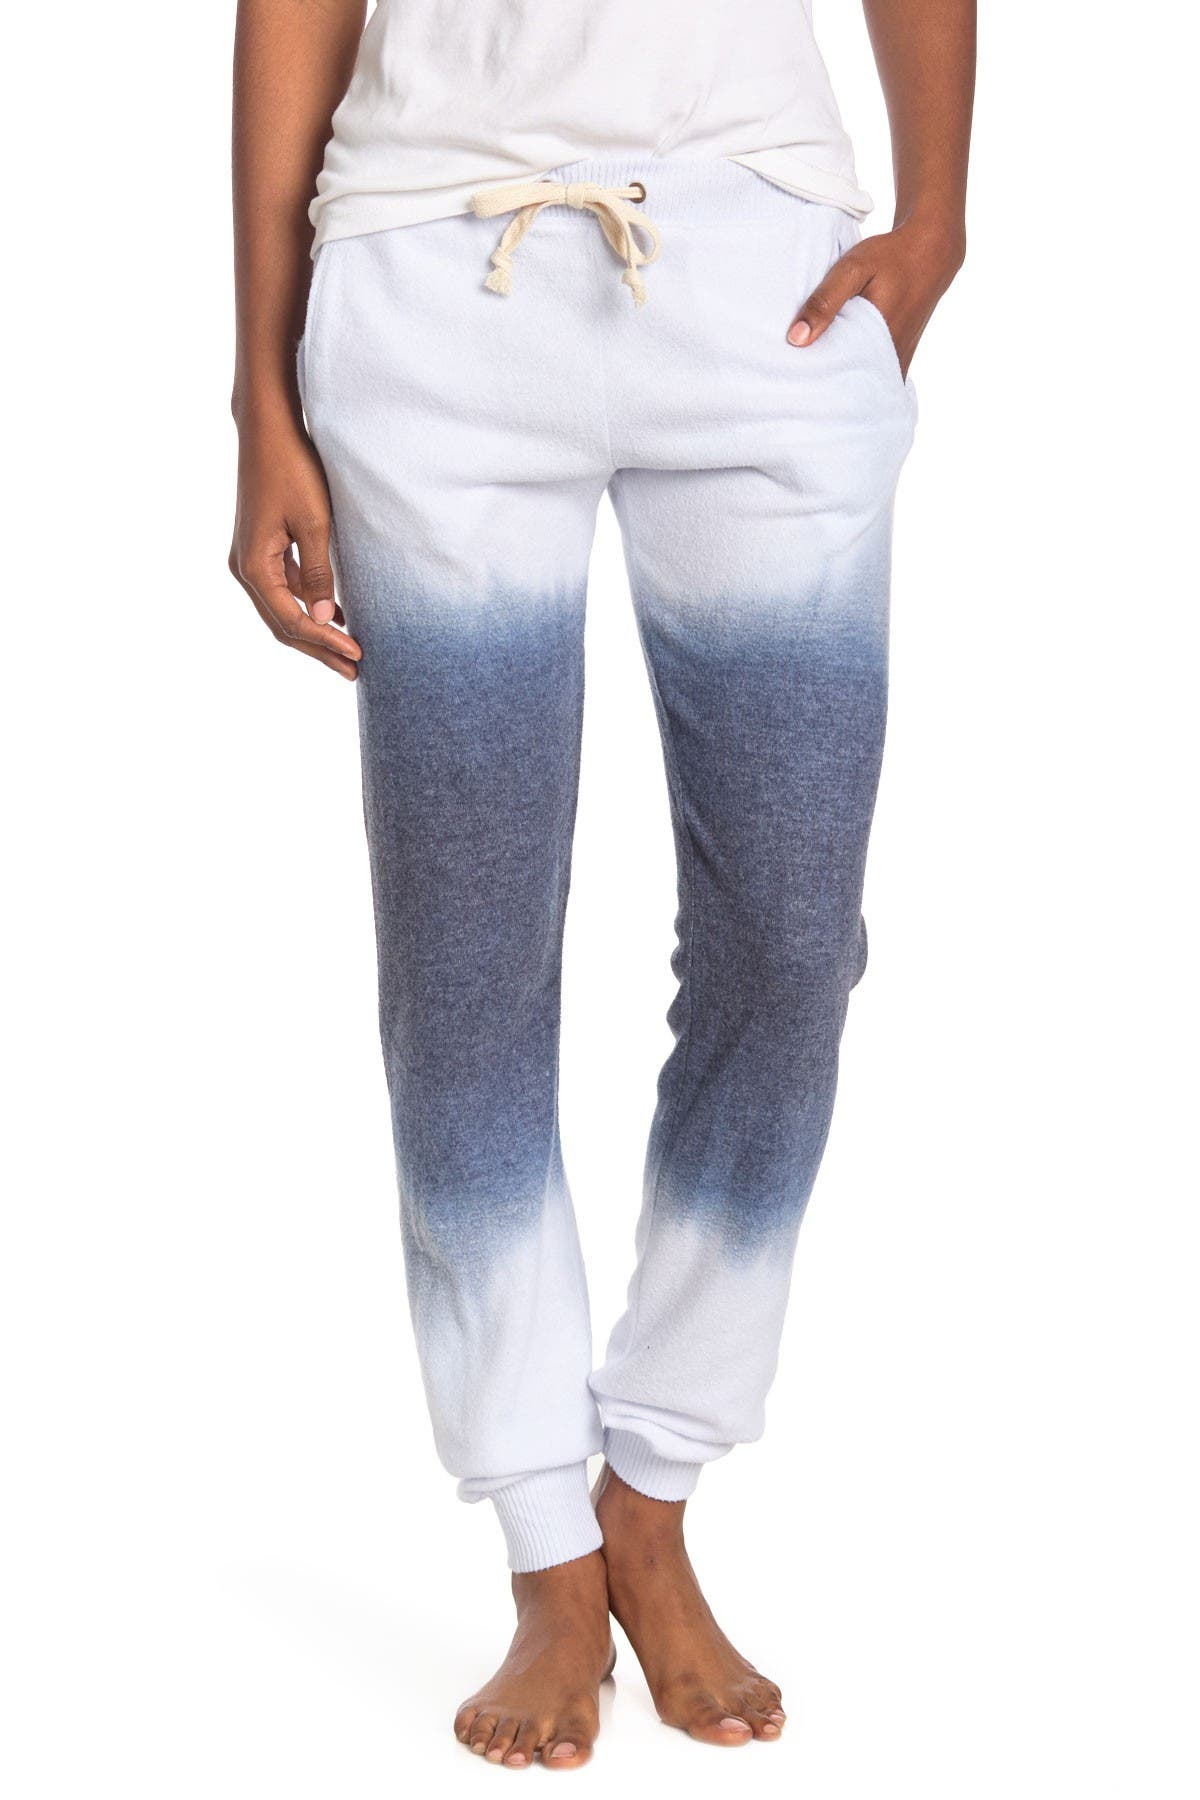 Theo and Spence Tie Dye Drawstring Joggers